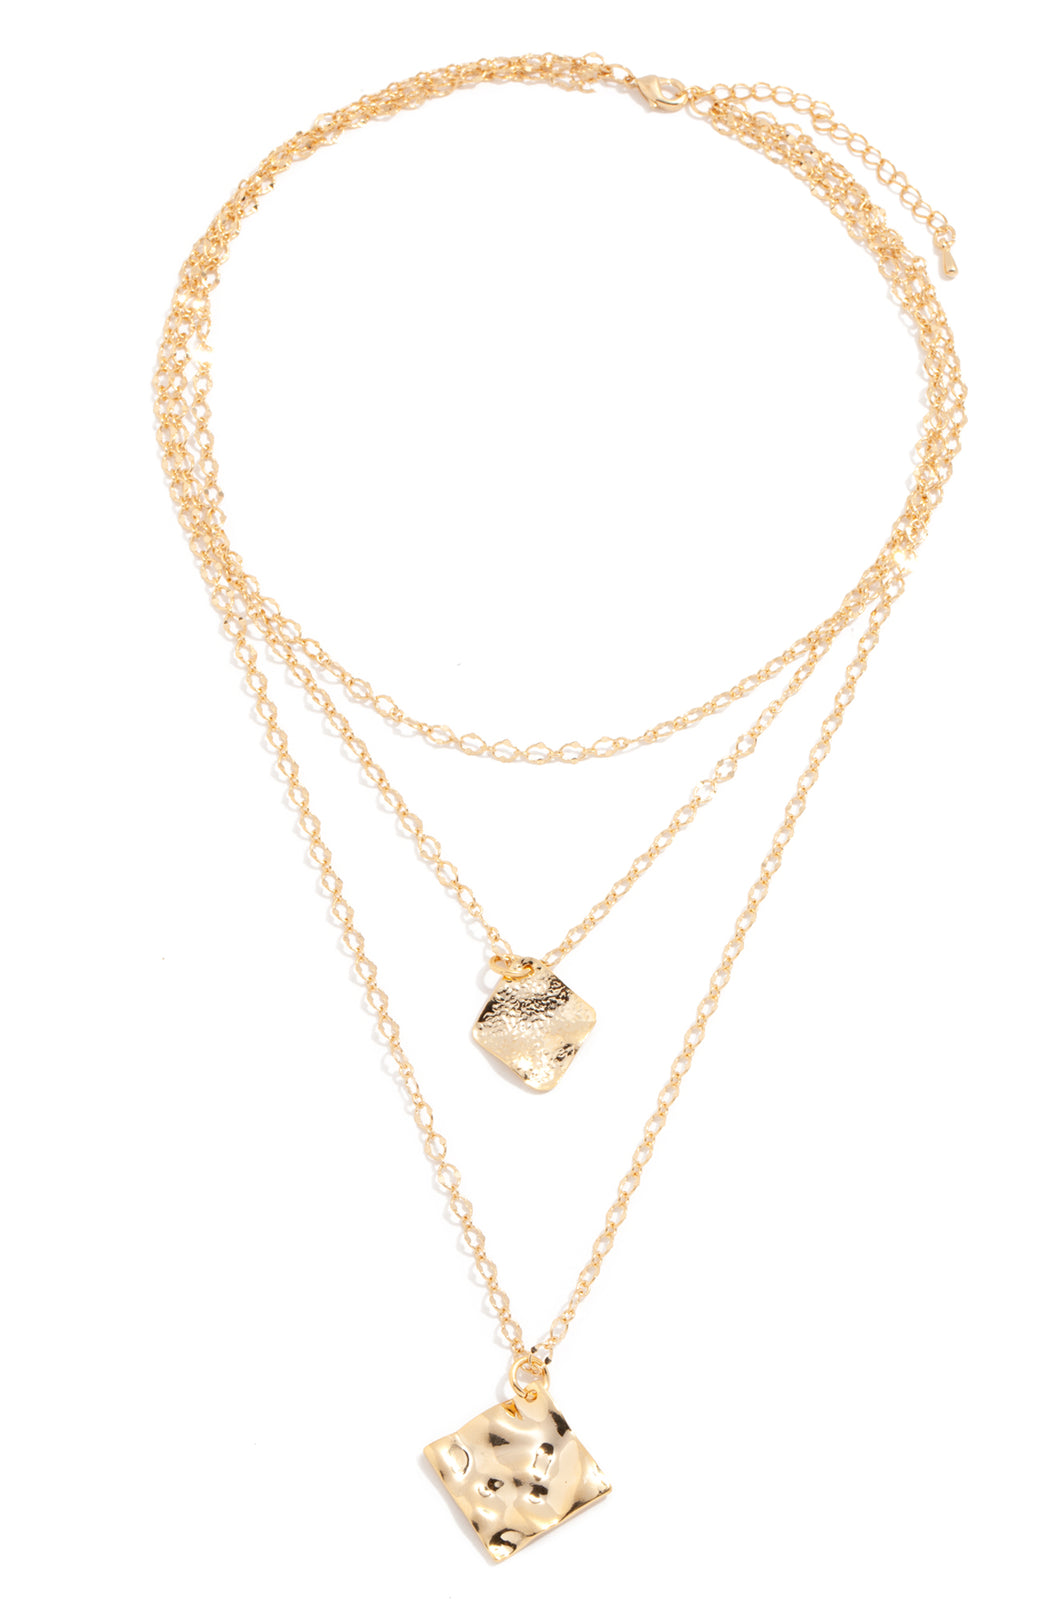 Demi Necklace - Gold